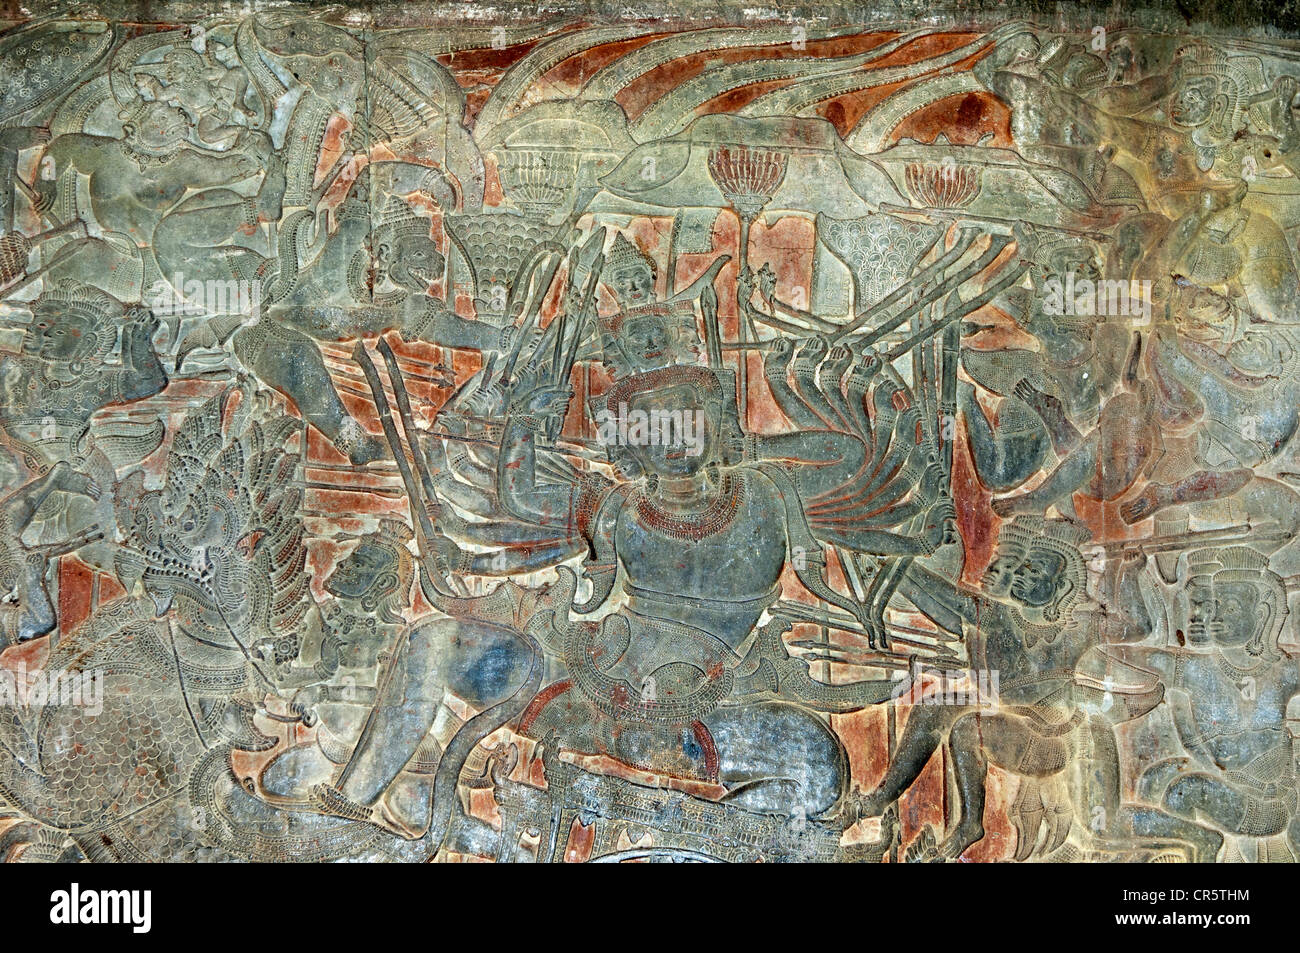 Part of the bas-relief in the West Gallery depicting scenes of the battle of Kurukshetra from the Hindu epic Mahabharata, - Stock Image